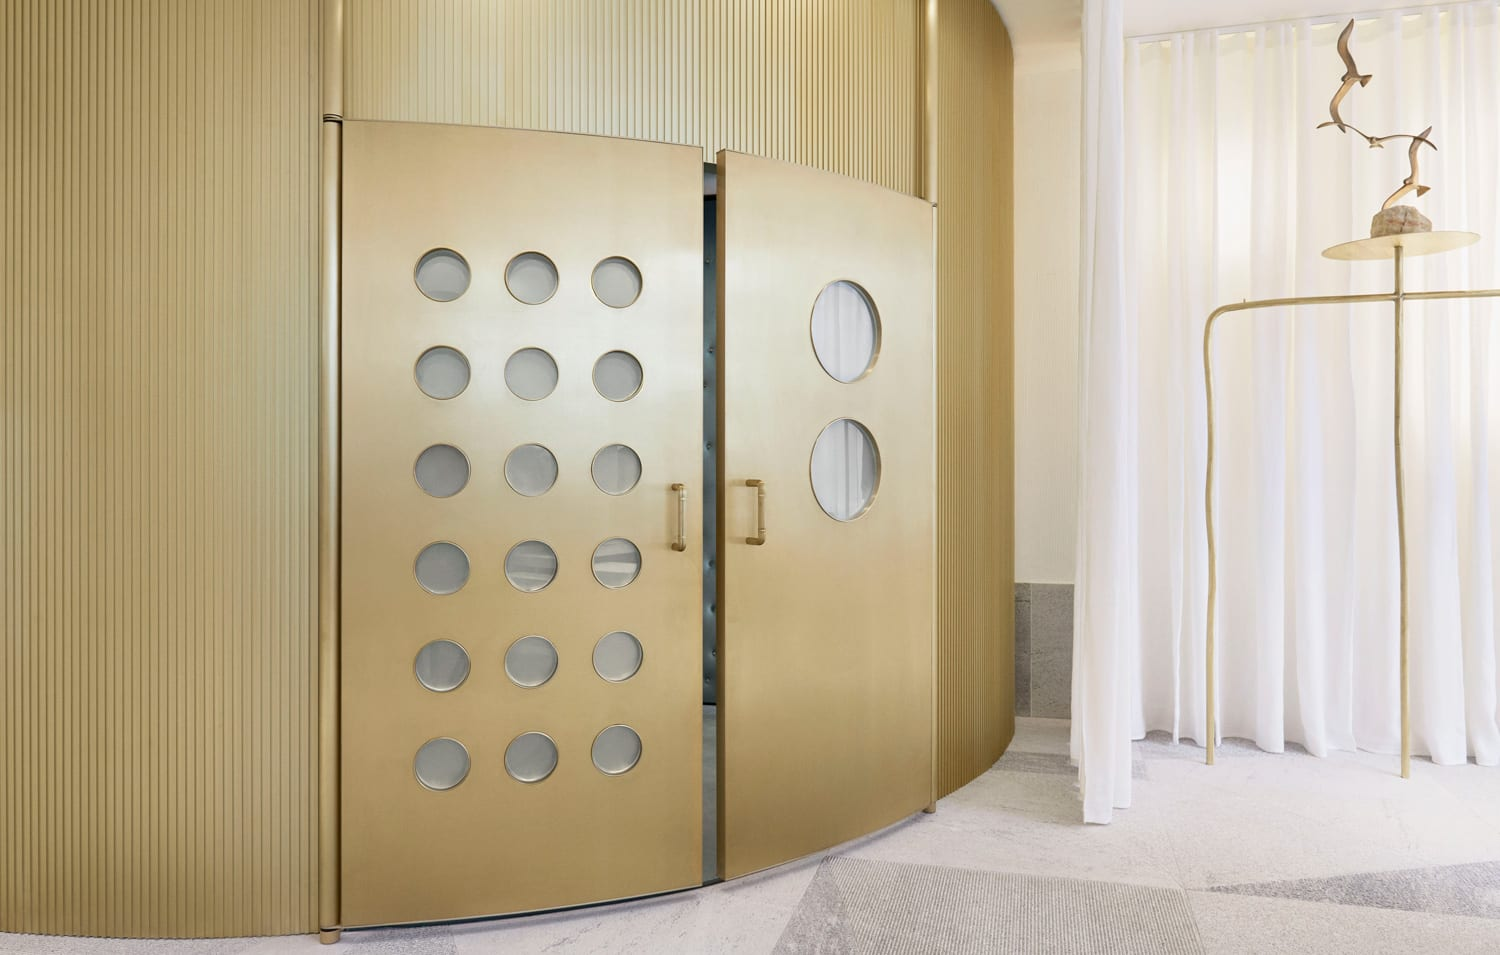 Forte Forte Store in Paris by Robert Vattilana | Yellowtrace